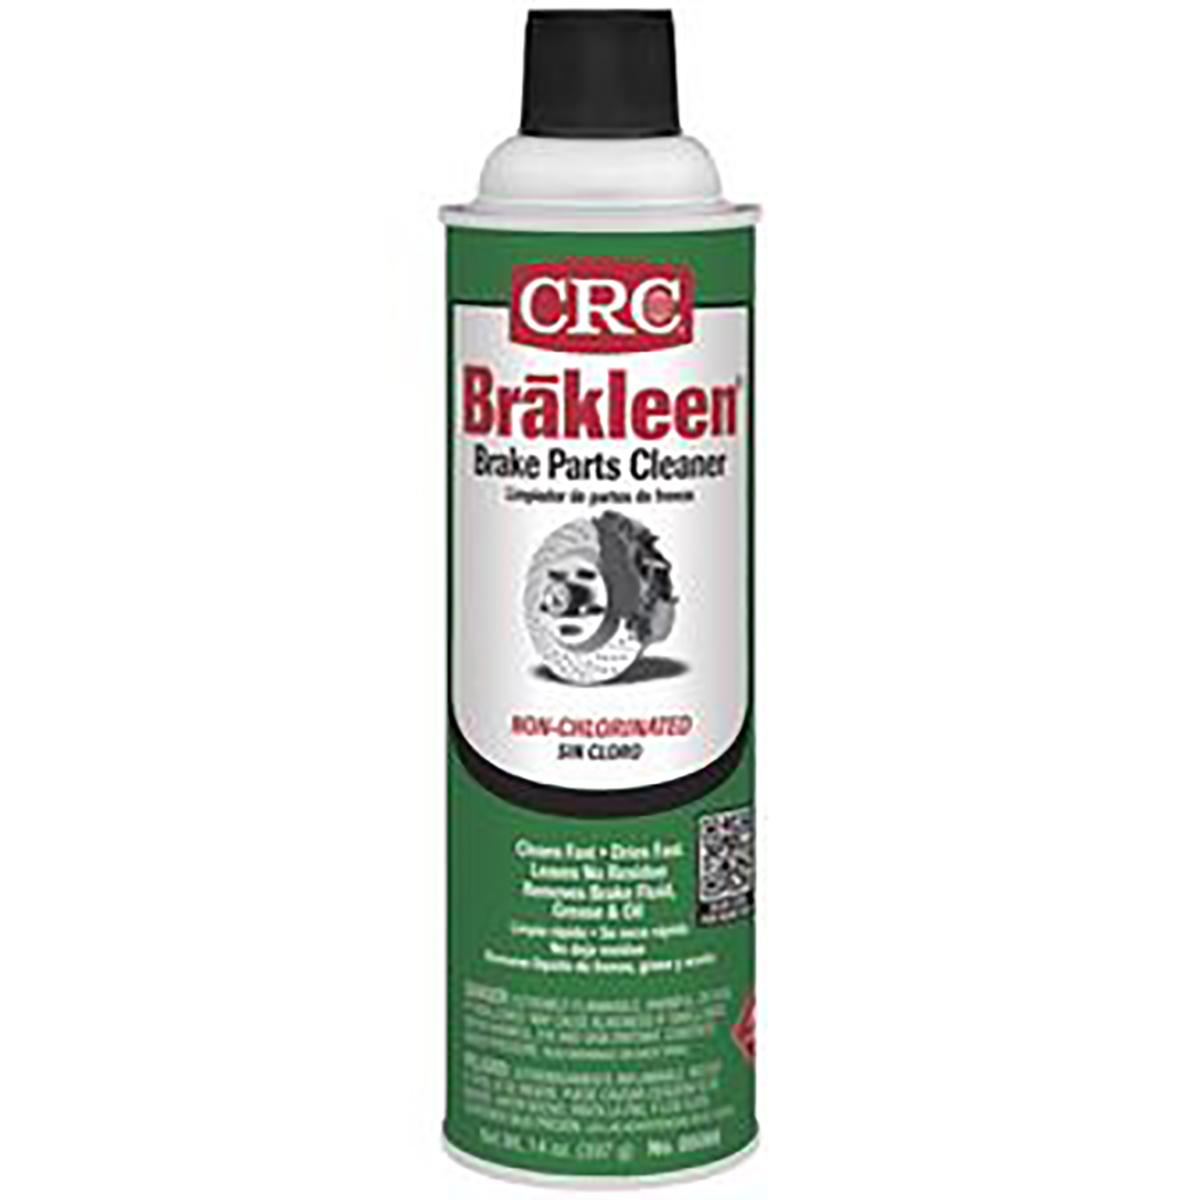 Brakleen® Brake Parts Cleaner - Non-Chlorinated, 14 Wt Oz